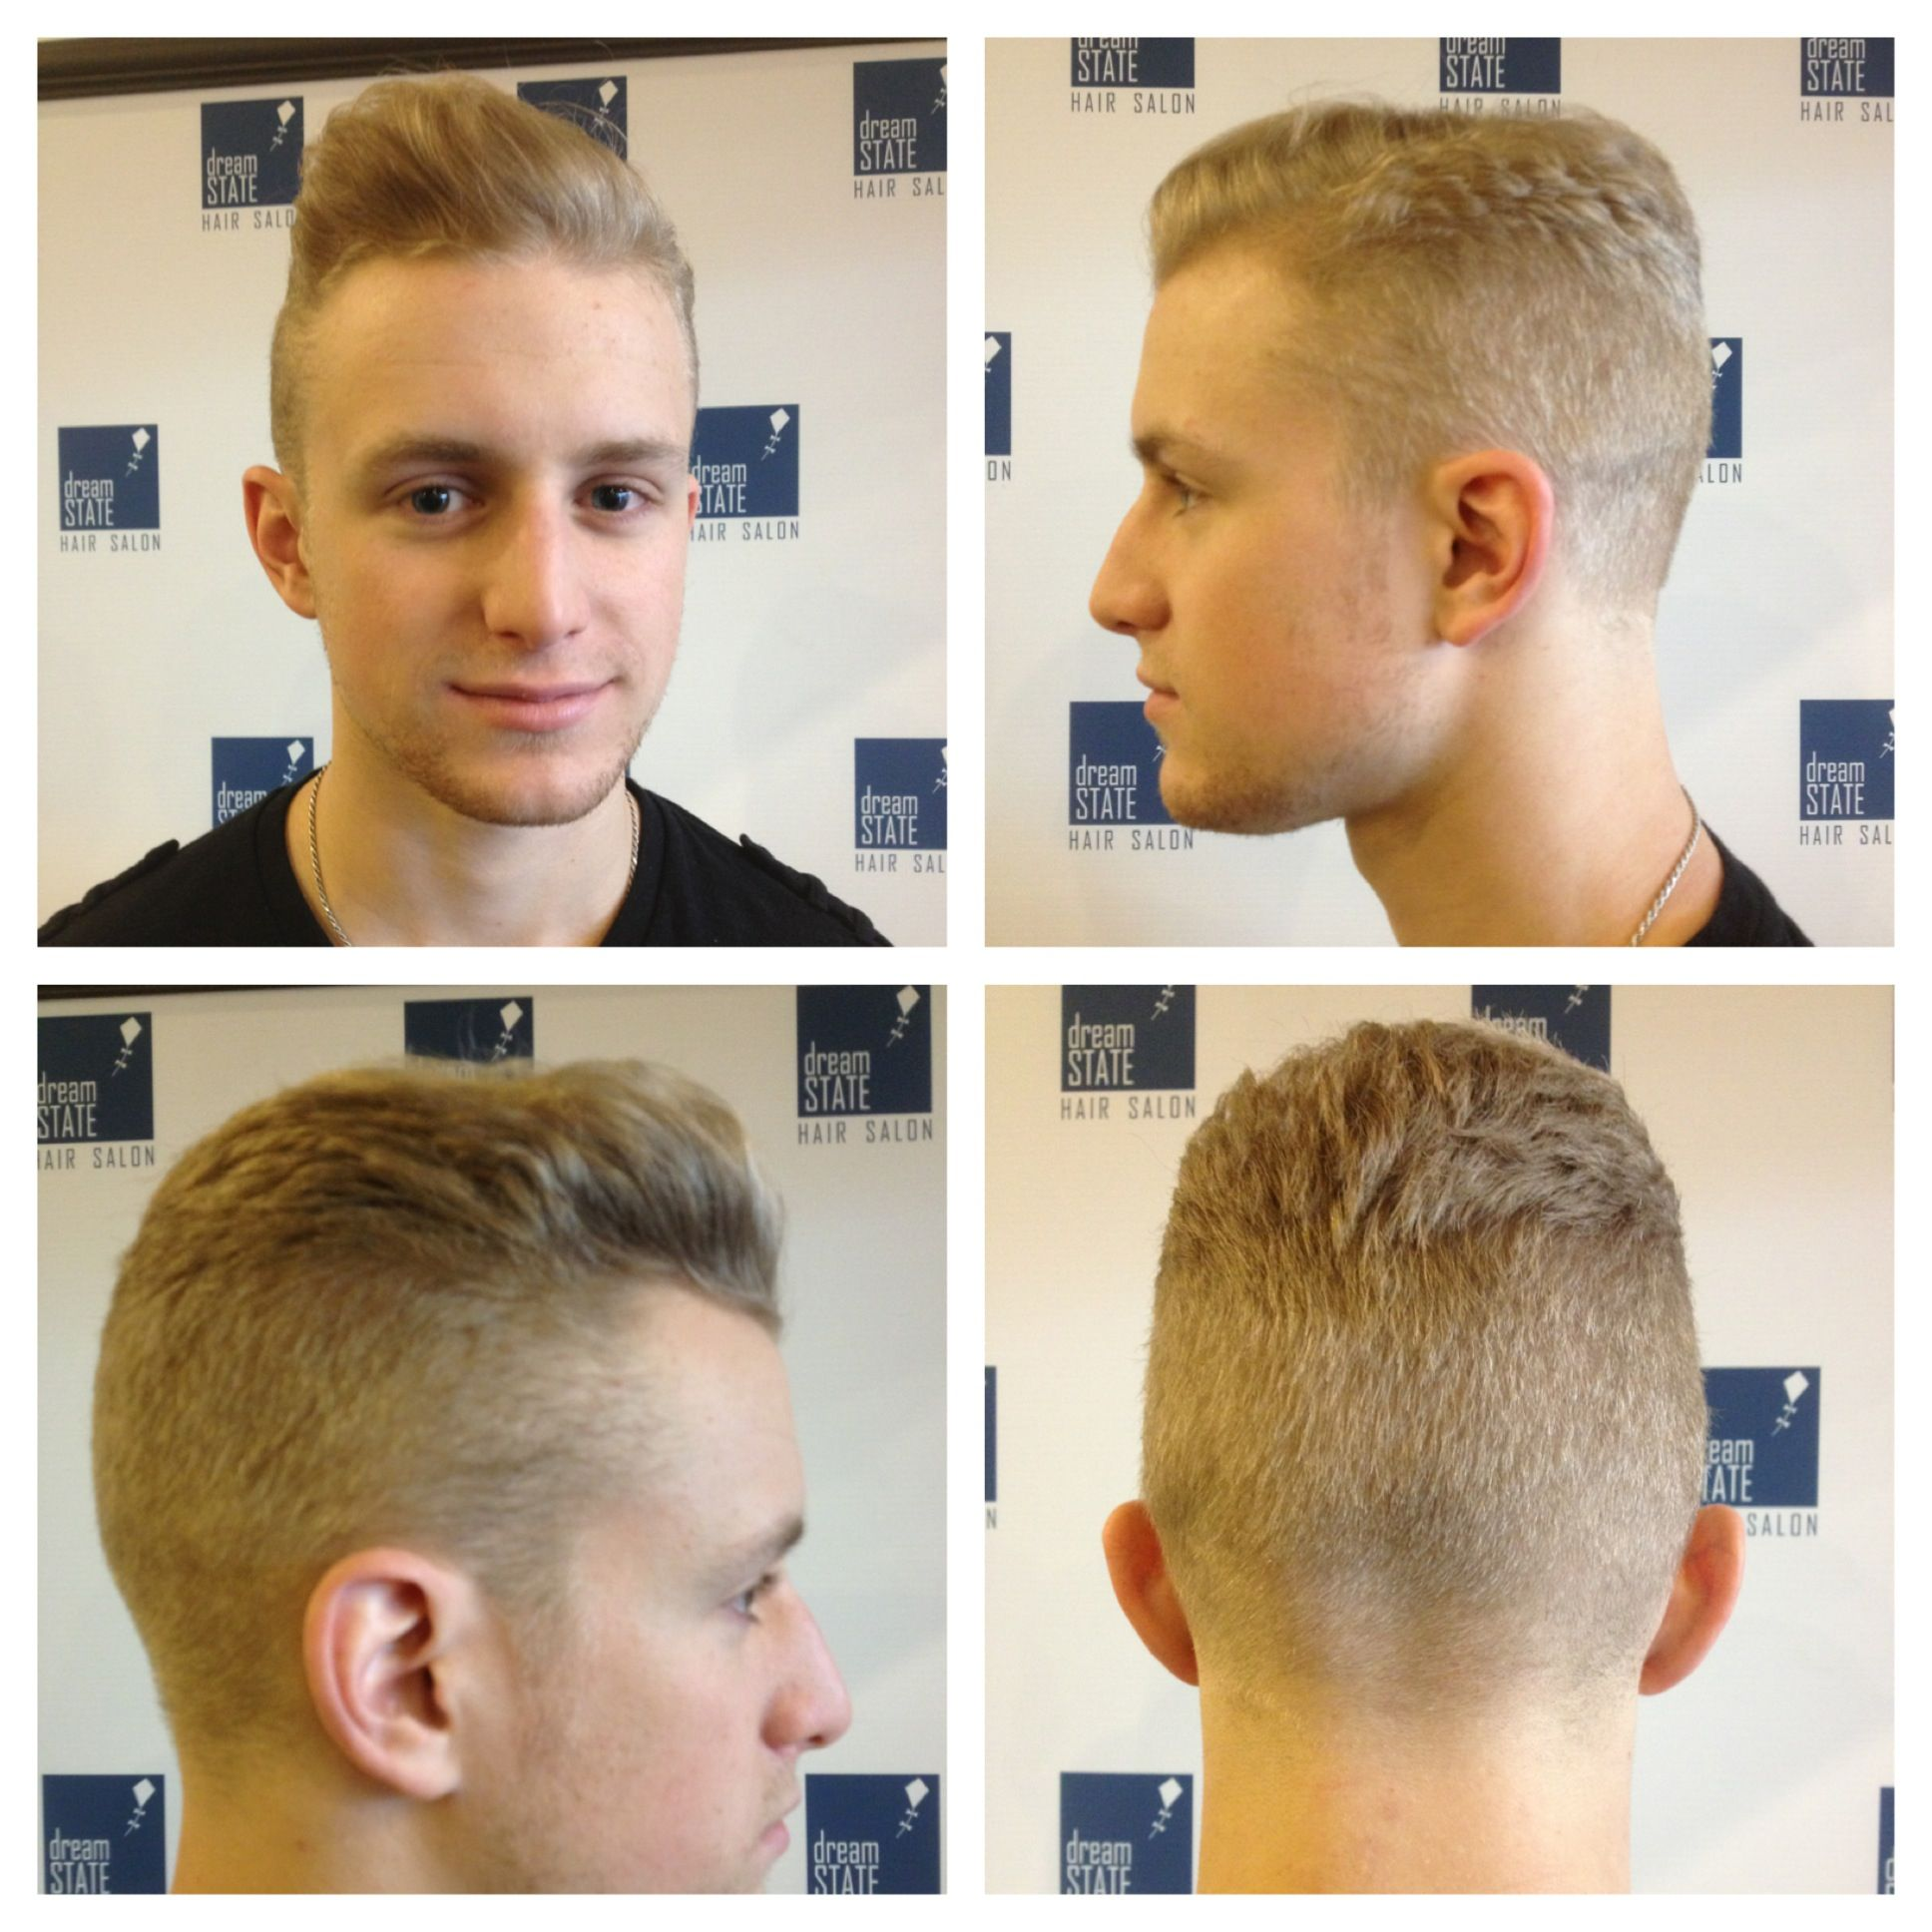 Trent S New Haircut Courtesy Of Heather Wightman At Dream State Salon Midtown Tallahassee Mens Hairstyles New Haircuts Mens Fashion